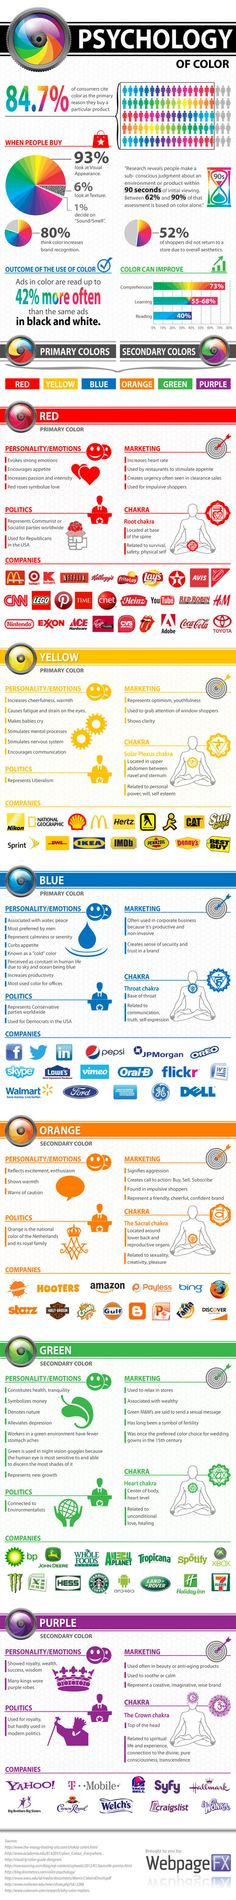 The Psychology of Color: How it Affects Buying Decisions [Infographic] | MarketingHits | Scoop.it